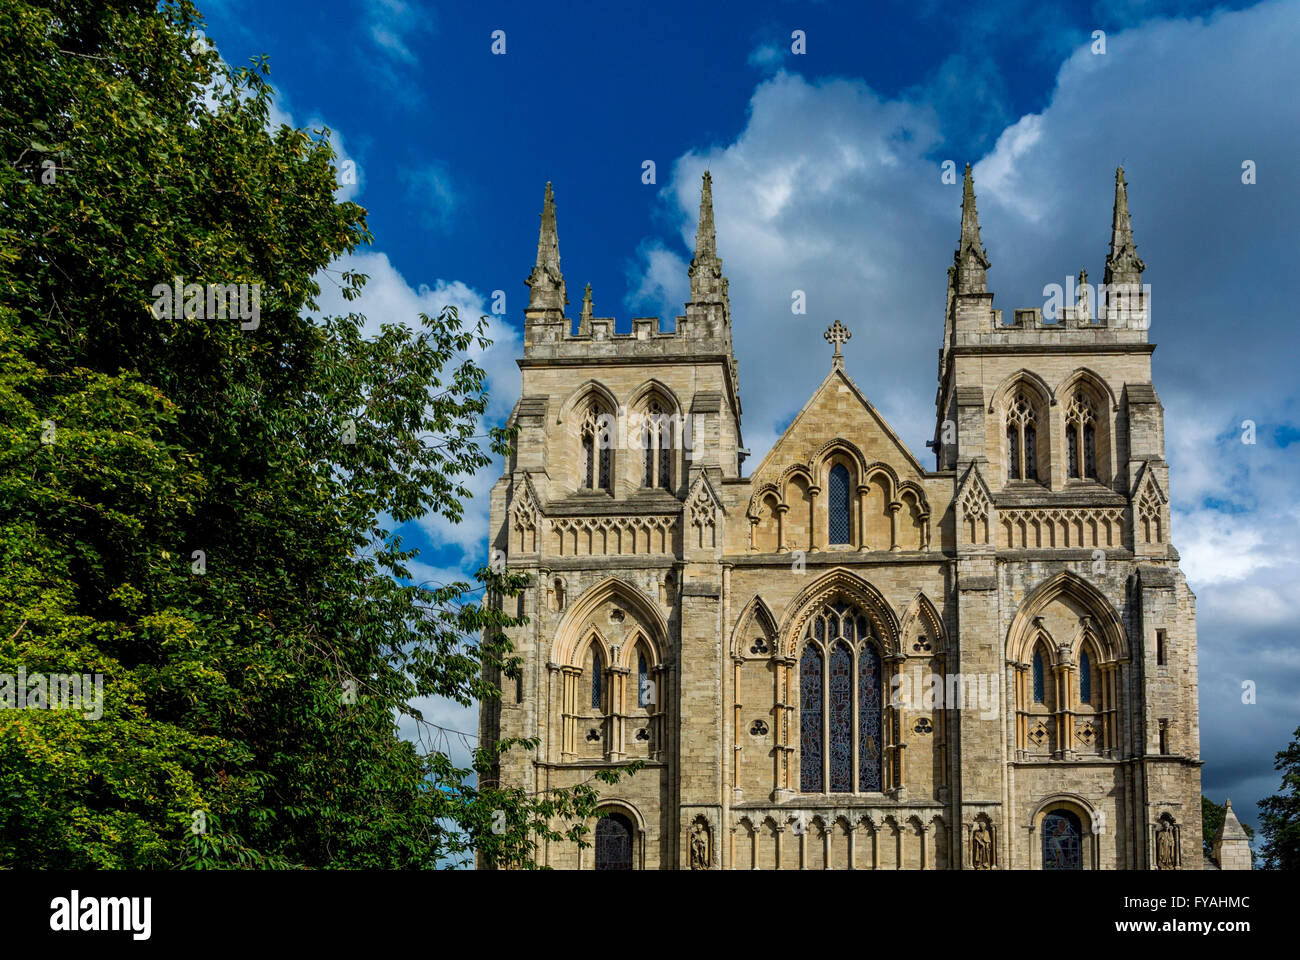 Selby Abbey, North Yorkshire, UK - Stock Image